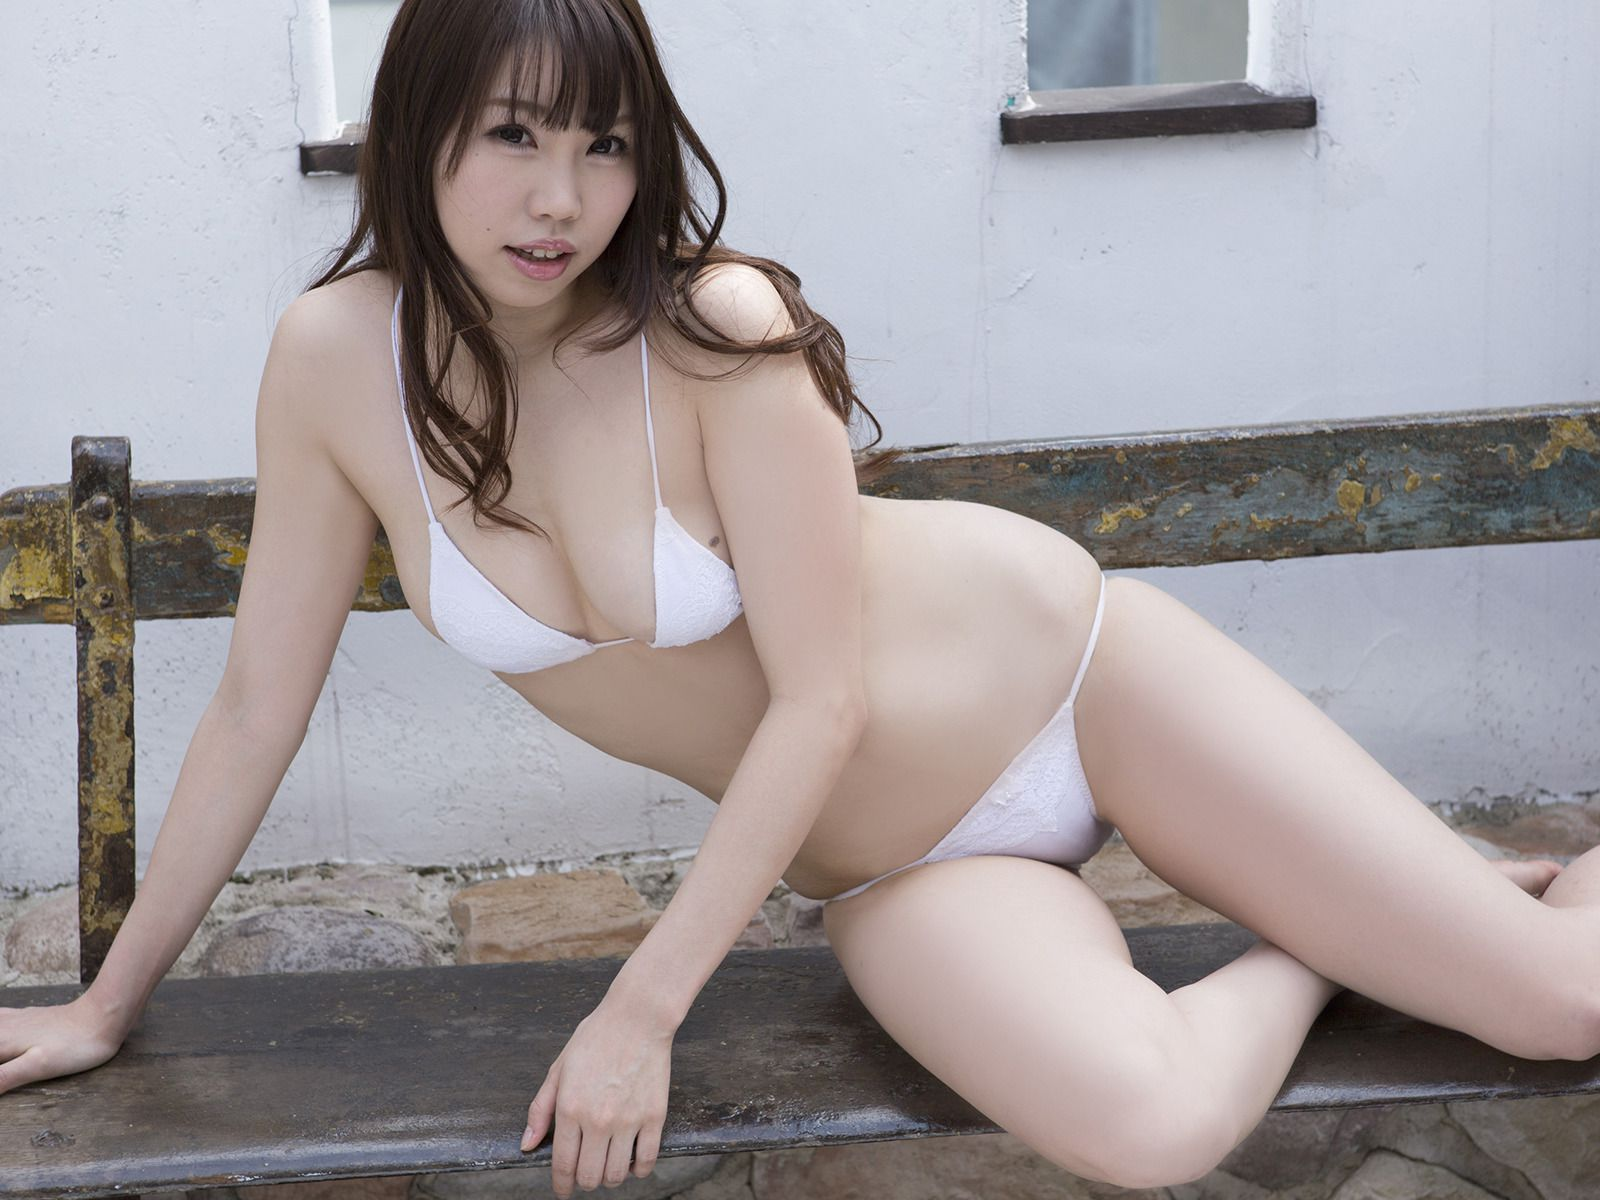 Mai Tsukamoto is naturally energized by the ample G breast005